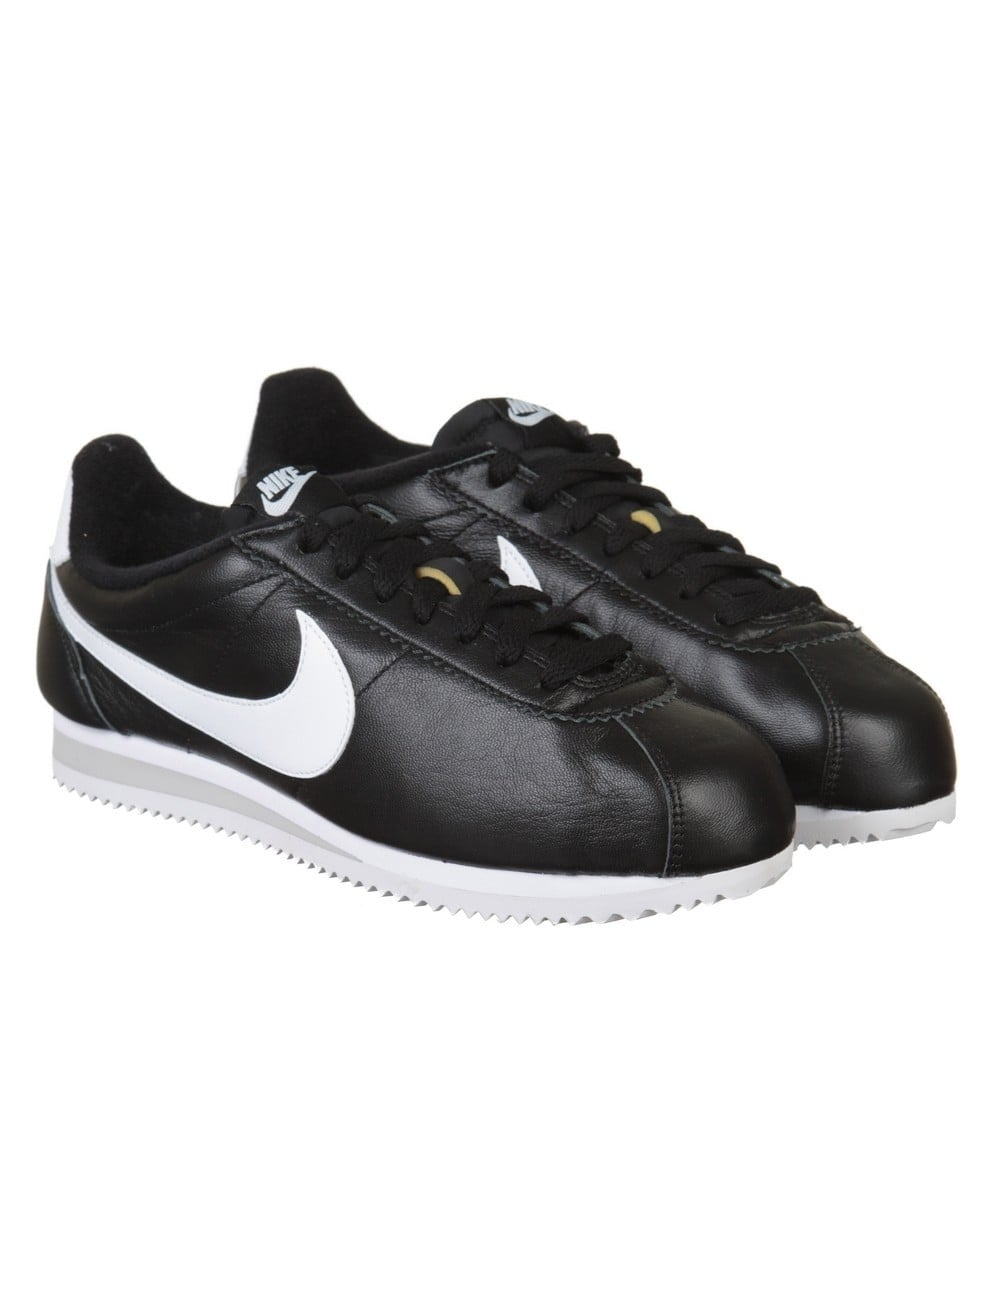 low priced 6ec4b 7a071 Classic Cortez PRM Leather Trainers - Black/White